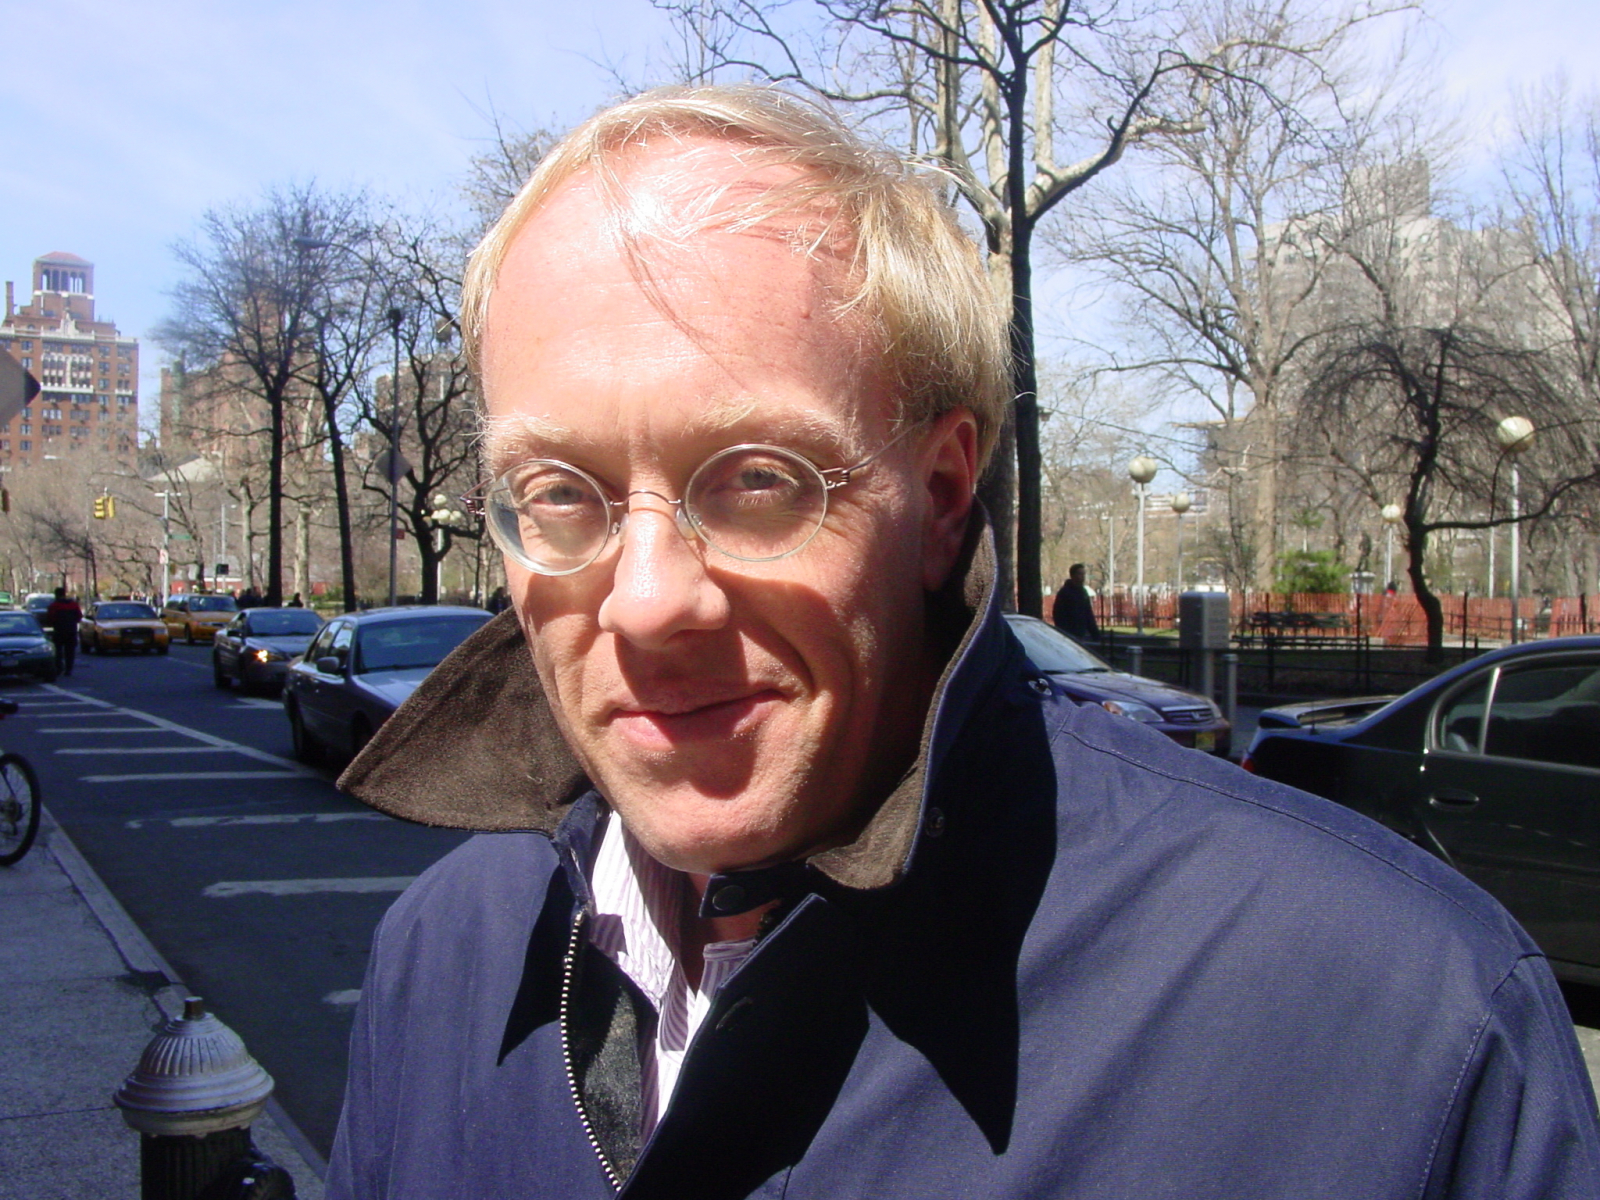 End Times For American Democracy An Interview With Chris Hedges National Observer